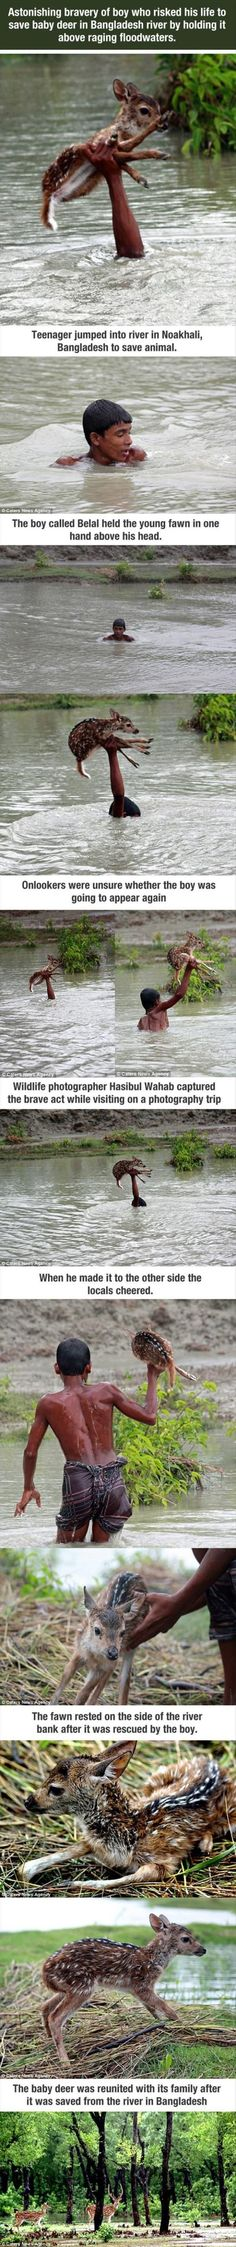 Young boy rescus a deer who's certain to drown in flood waters... Thank you ♥ (But why didn't the photographer do more to help???)